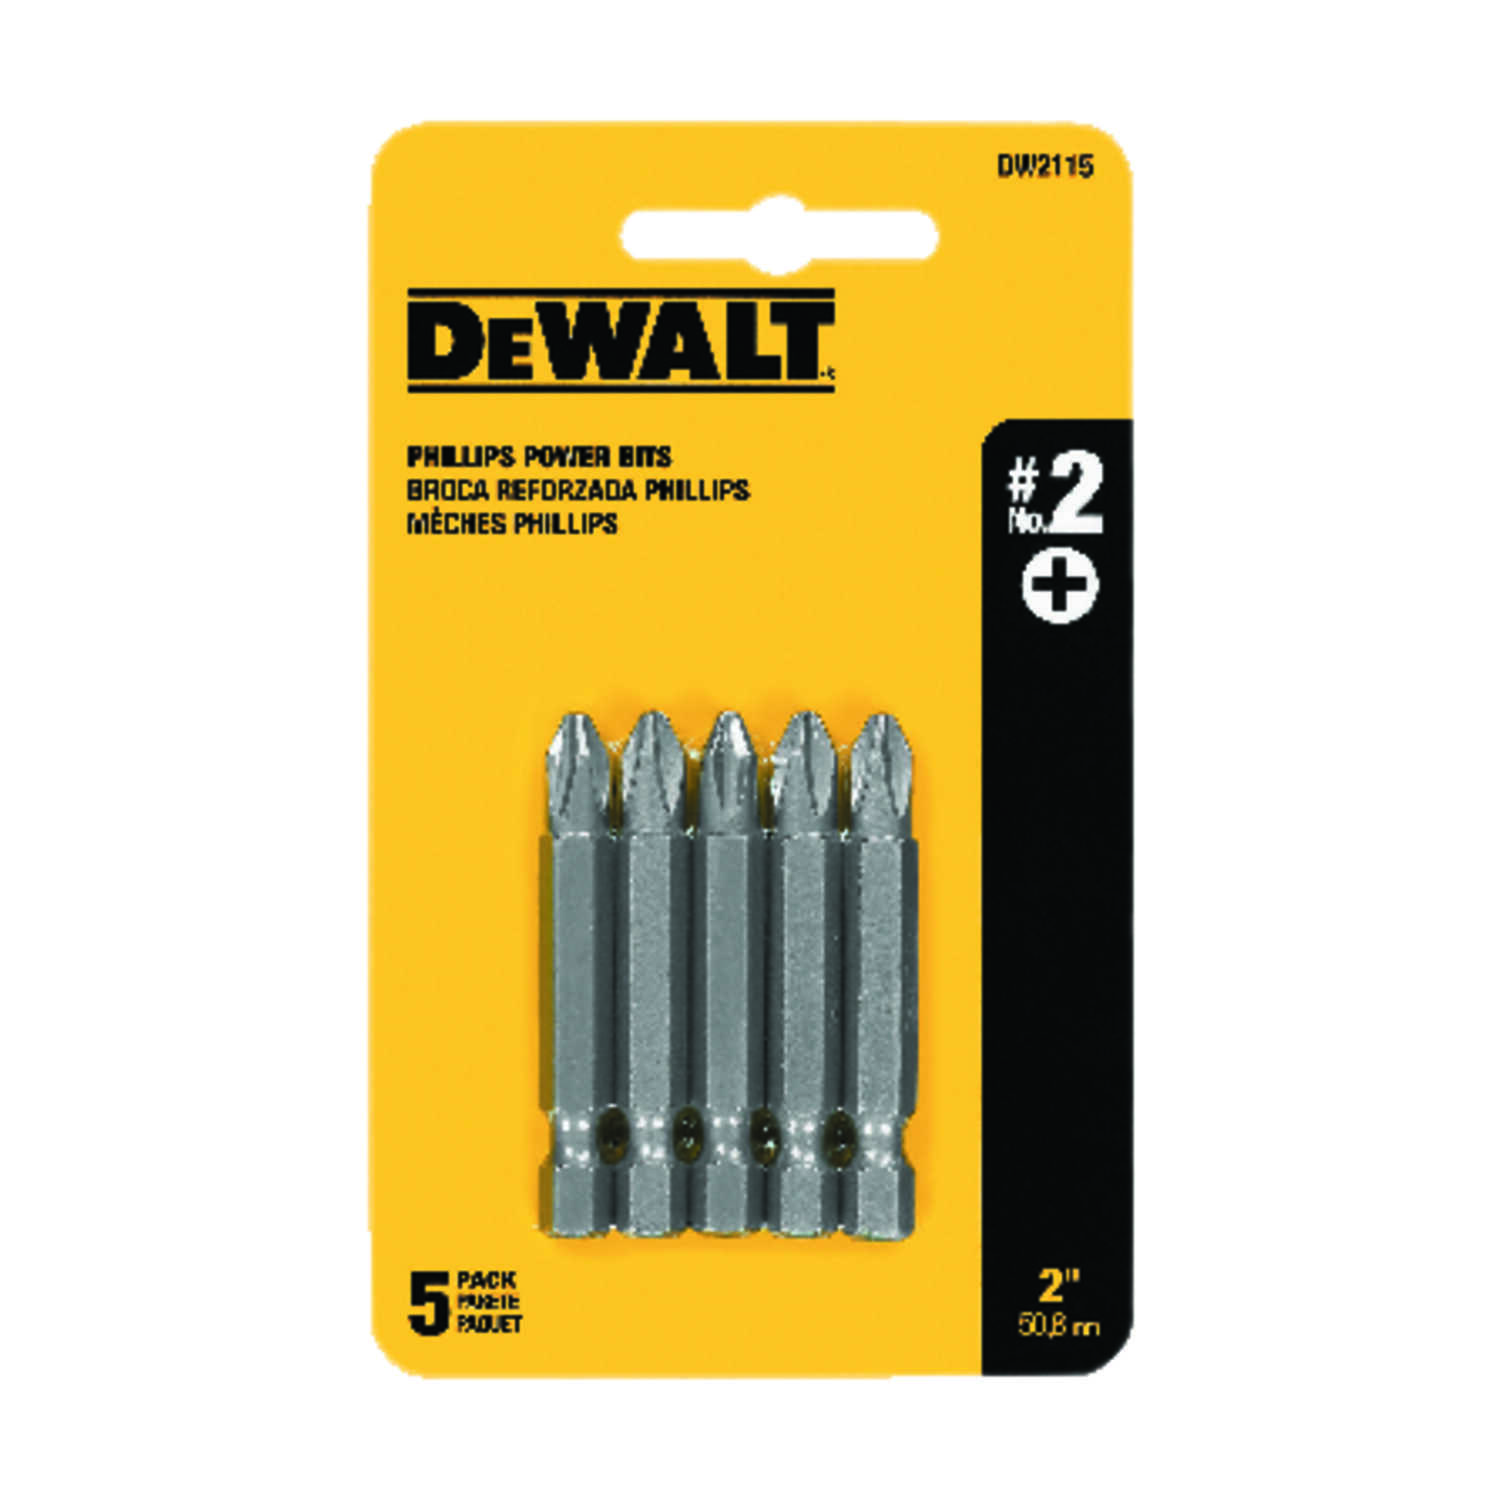 DeWalt  Phillips  #2   x 2 in. L Power Screwdriver Bit  Heat-Treated Steel  5 pc.